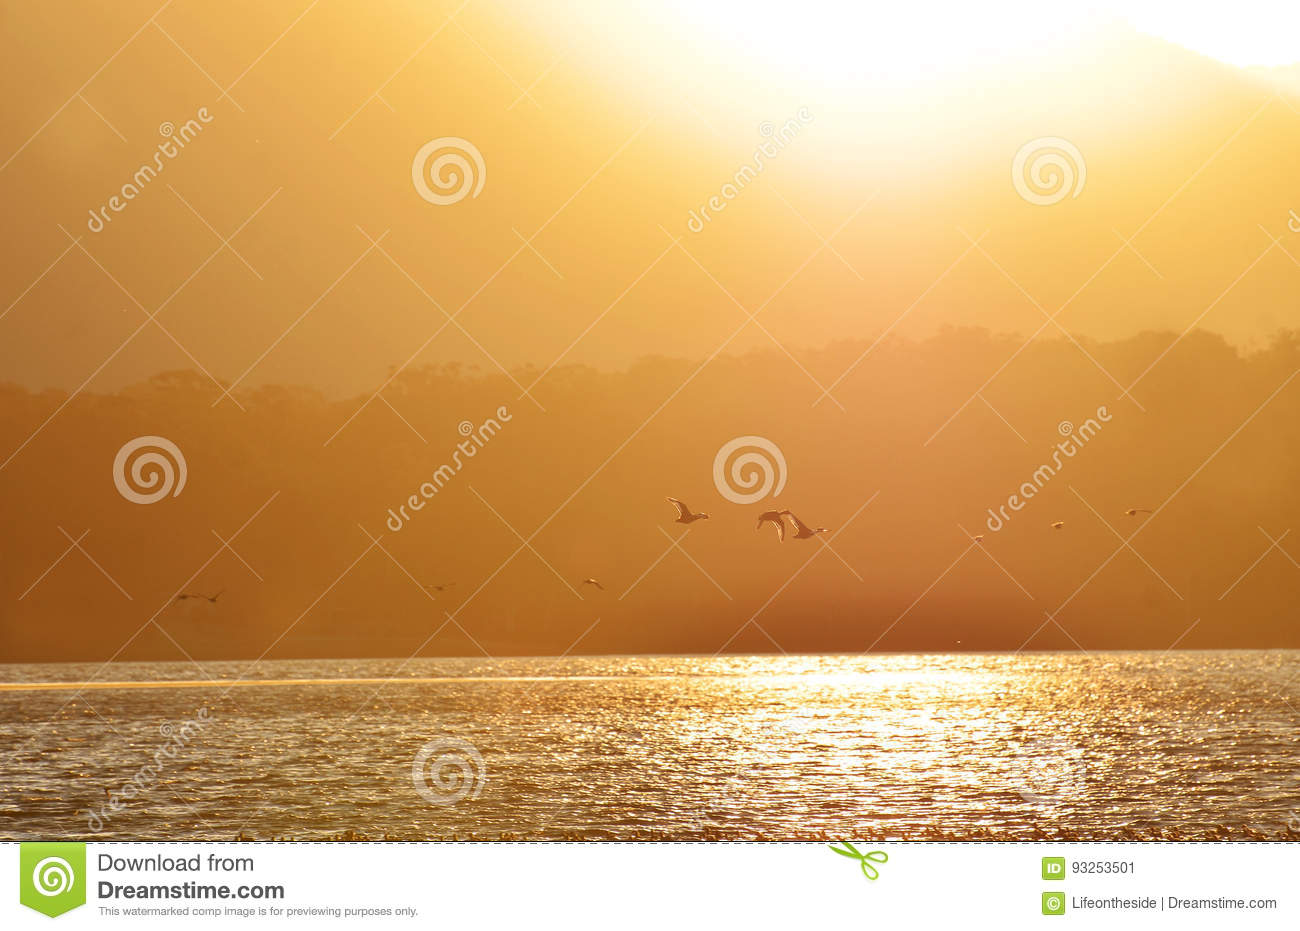 Background silhouettes of ducks flying in golden sunset lake